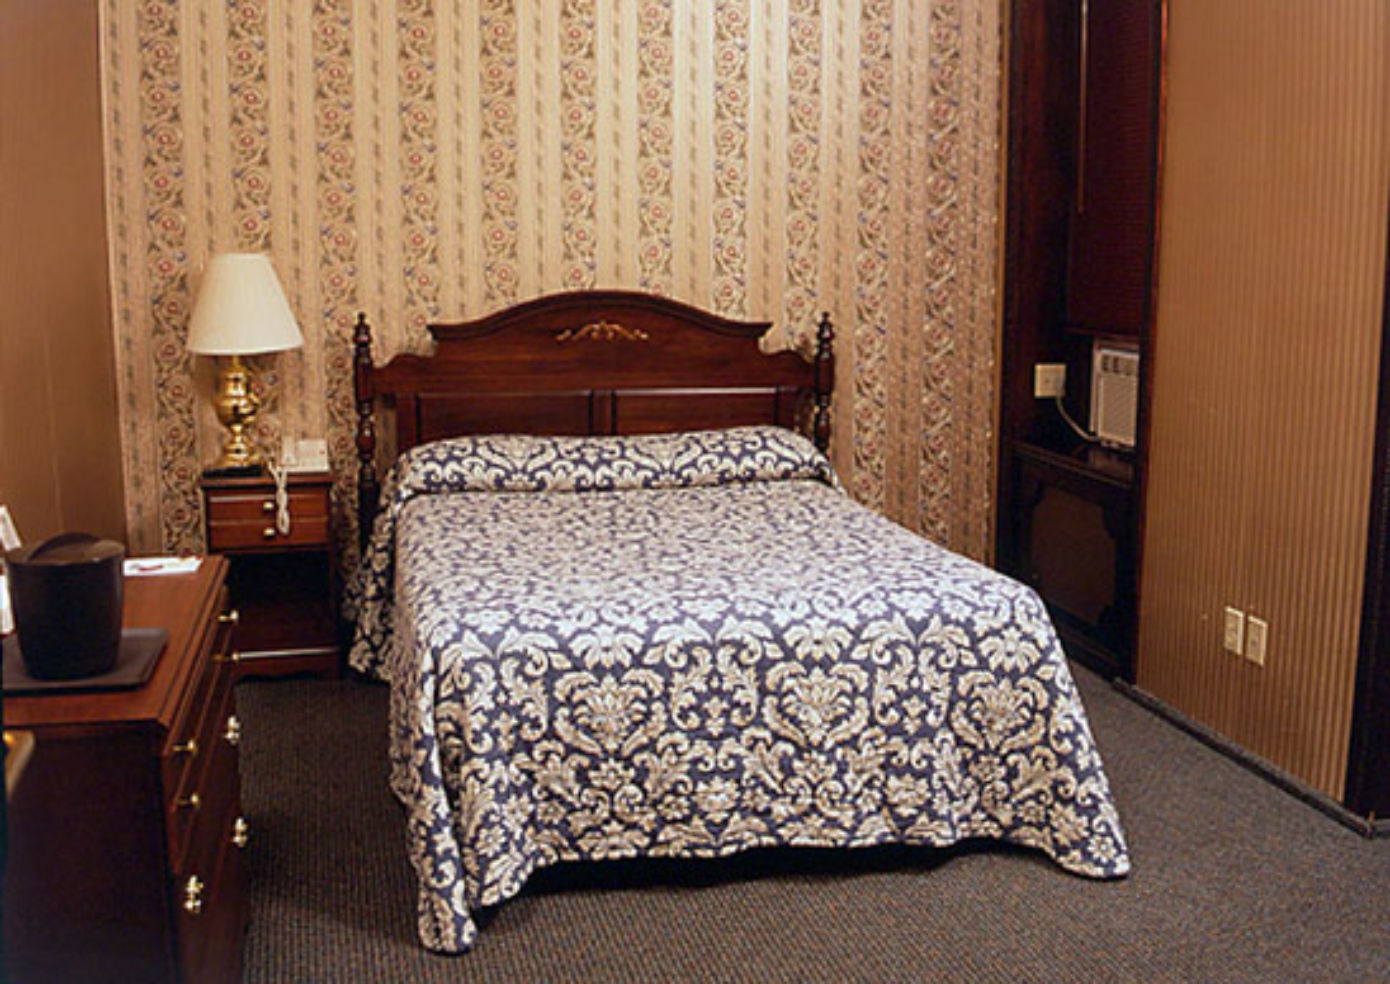 Hotel 17 room with queen bed